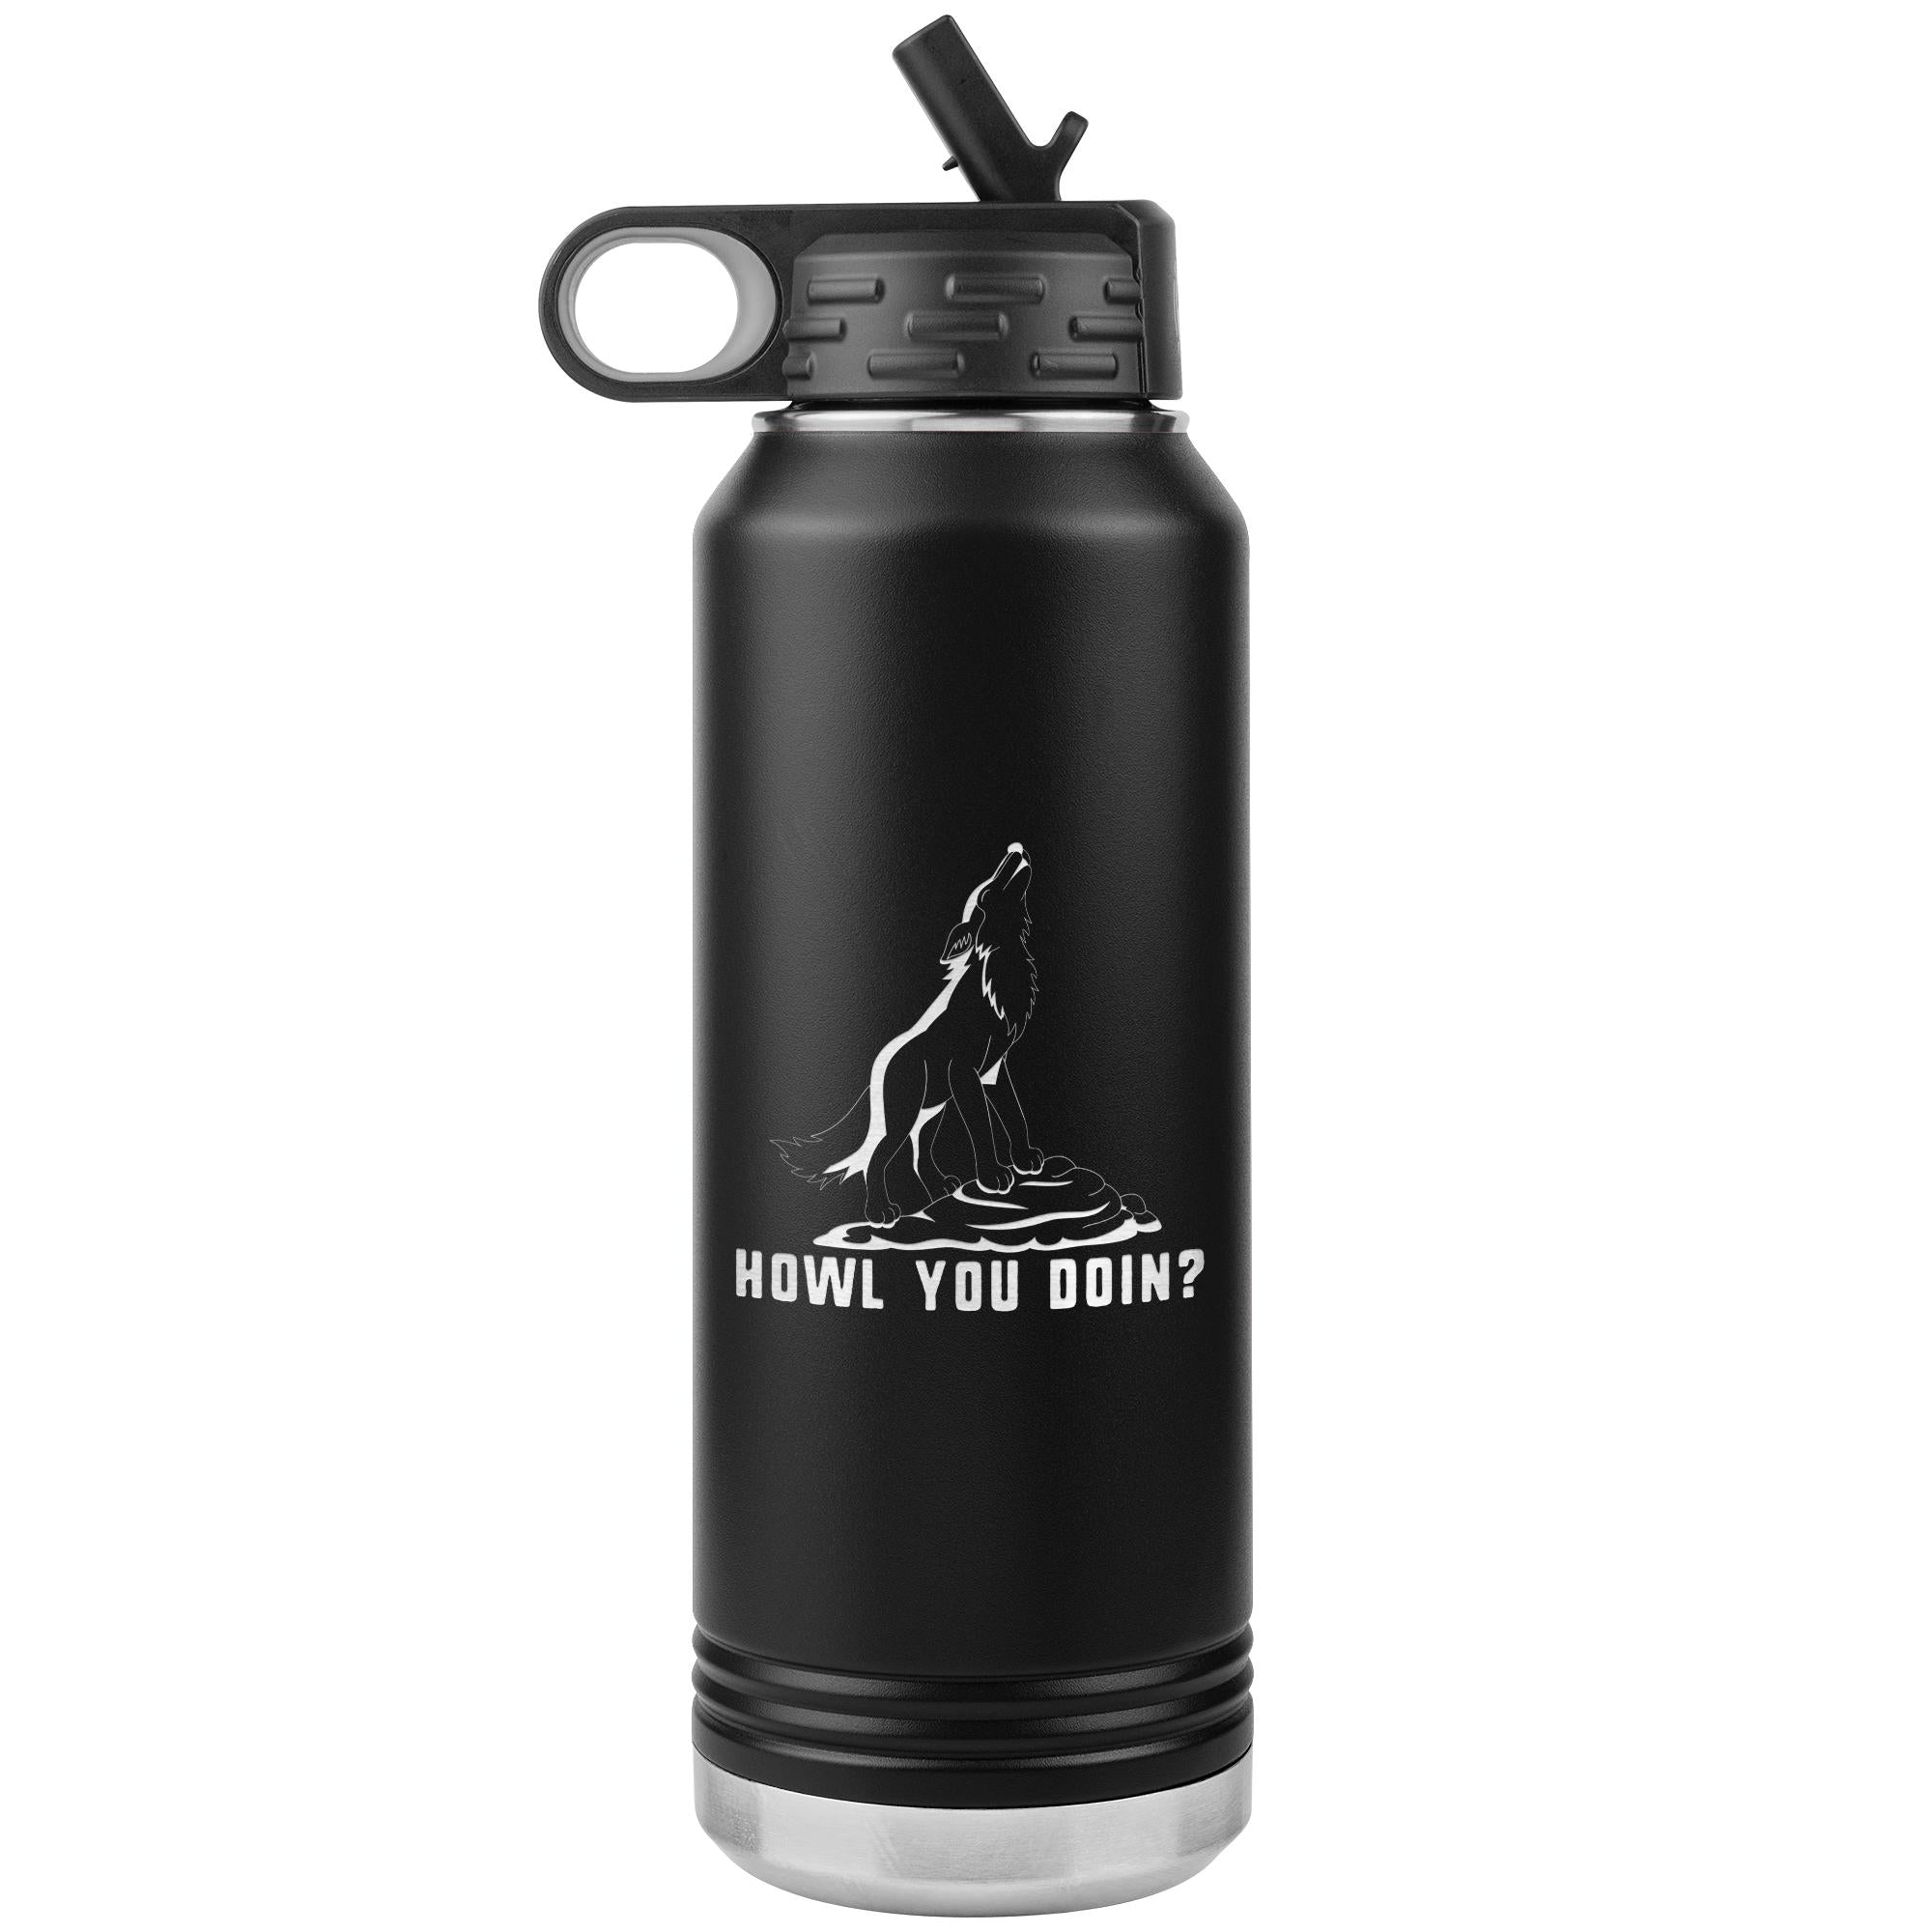 Howl you doin? Water Bottle Tumbler 32 oz-Tumblers-I love Veterinary